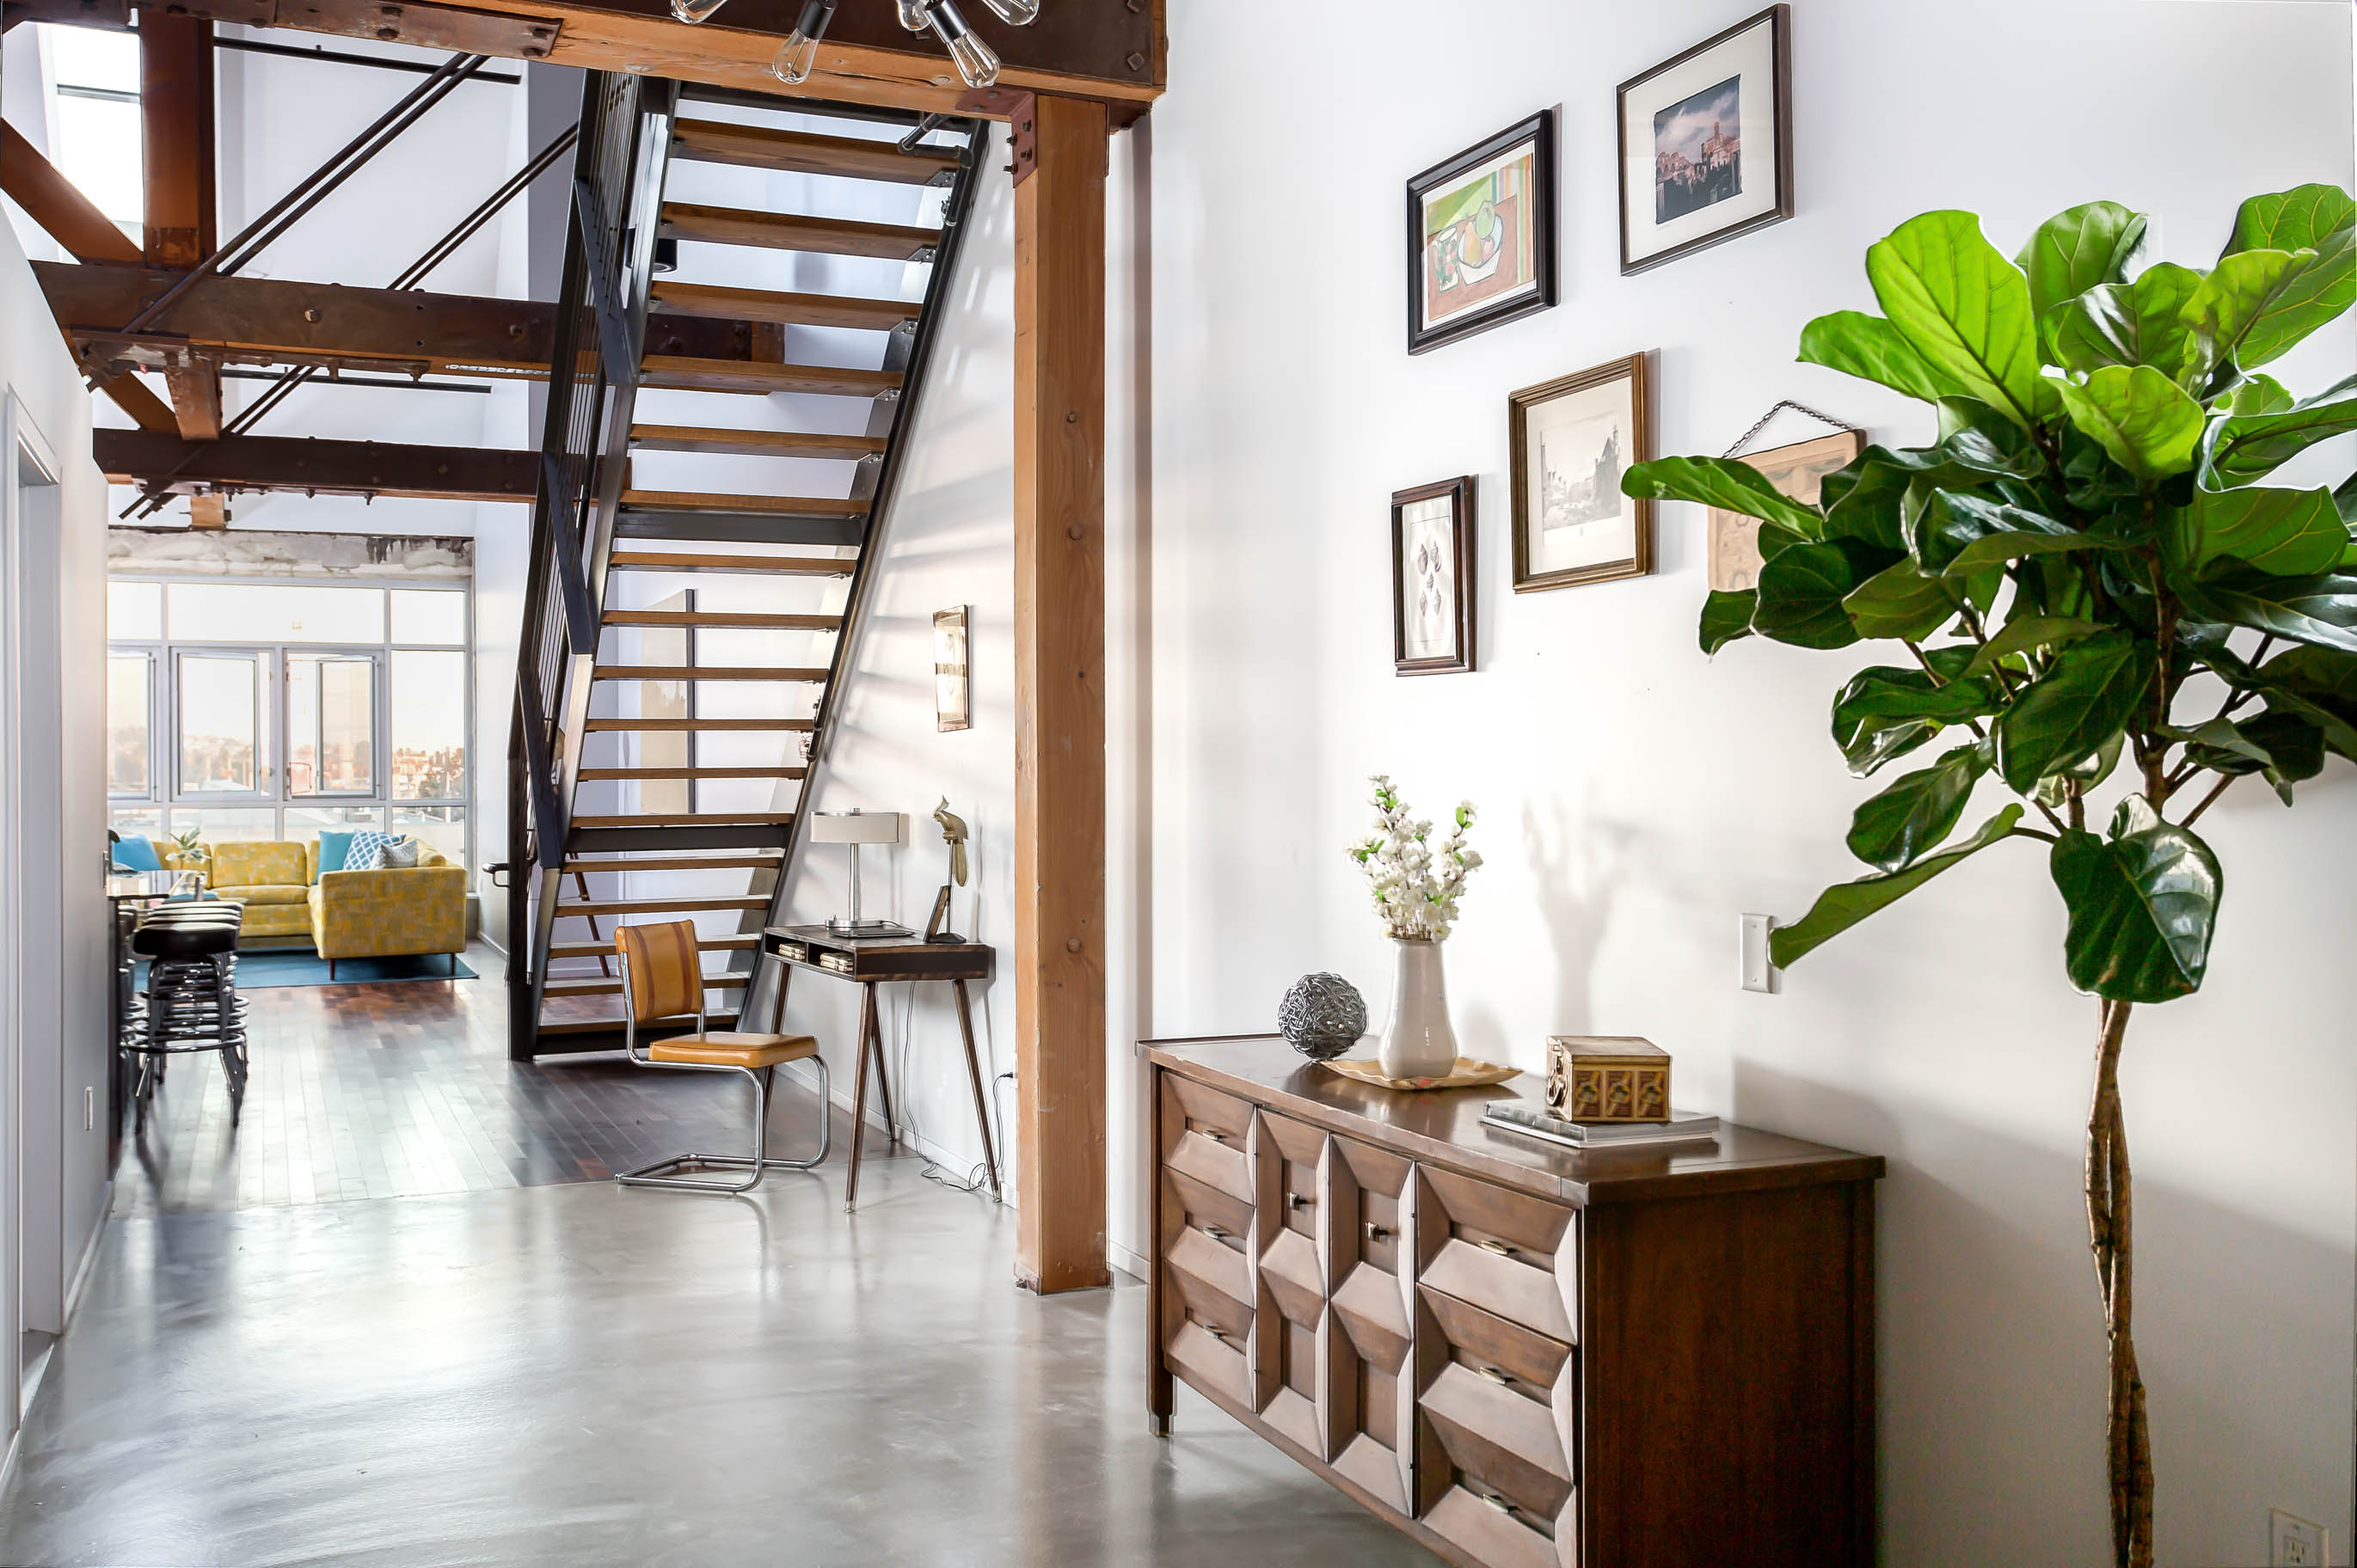 530 South Hewitt Street, #528, Downtown Los Angeles, CA 90013 – The ...